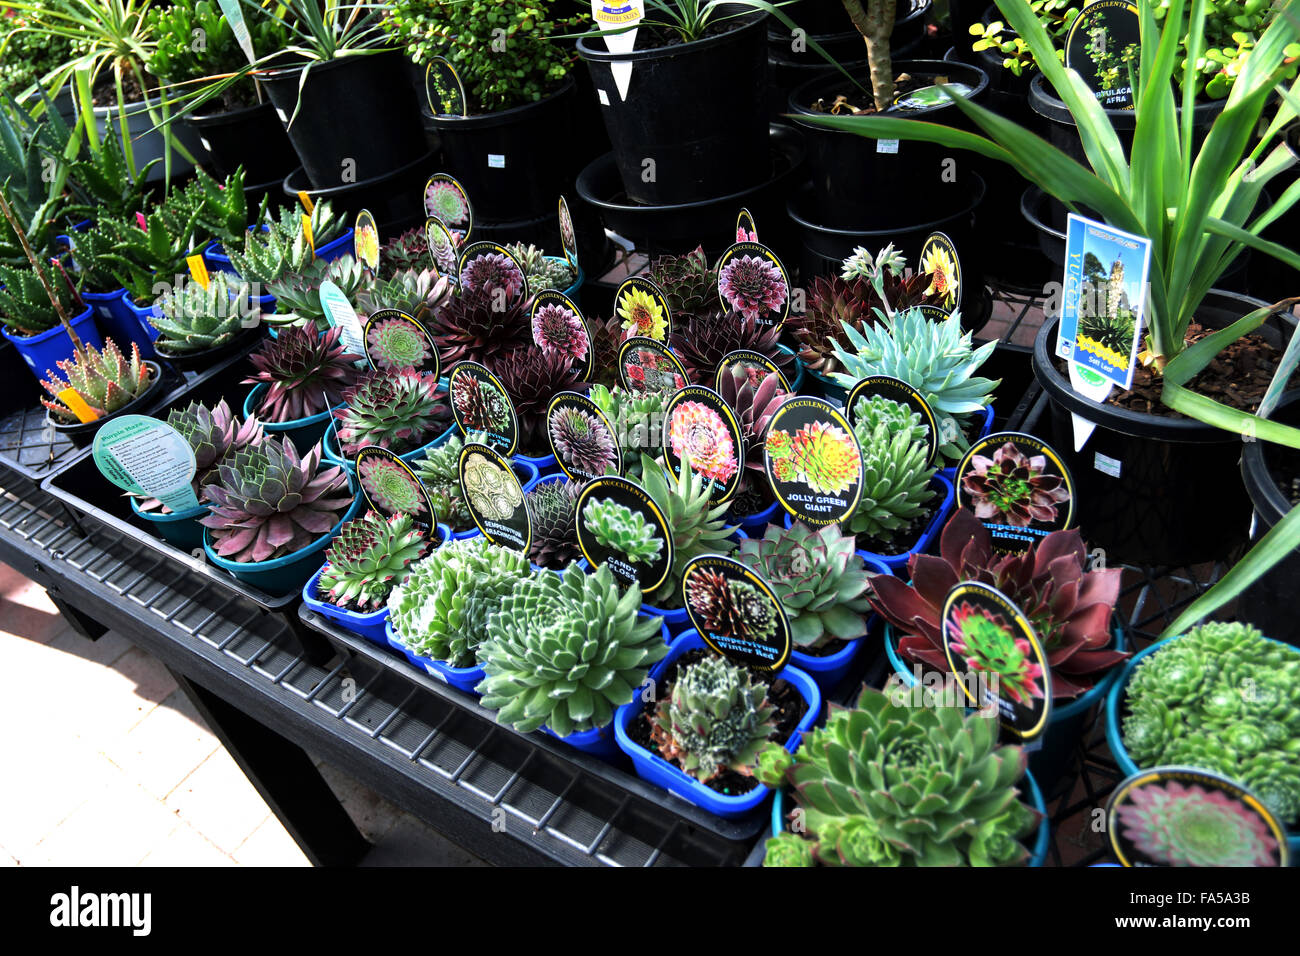 Mixed varieties of succulents for sale at local nursery - Stock Image